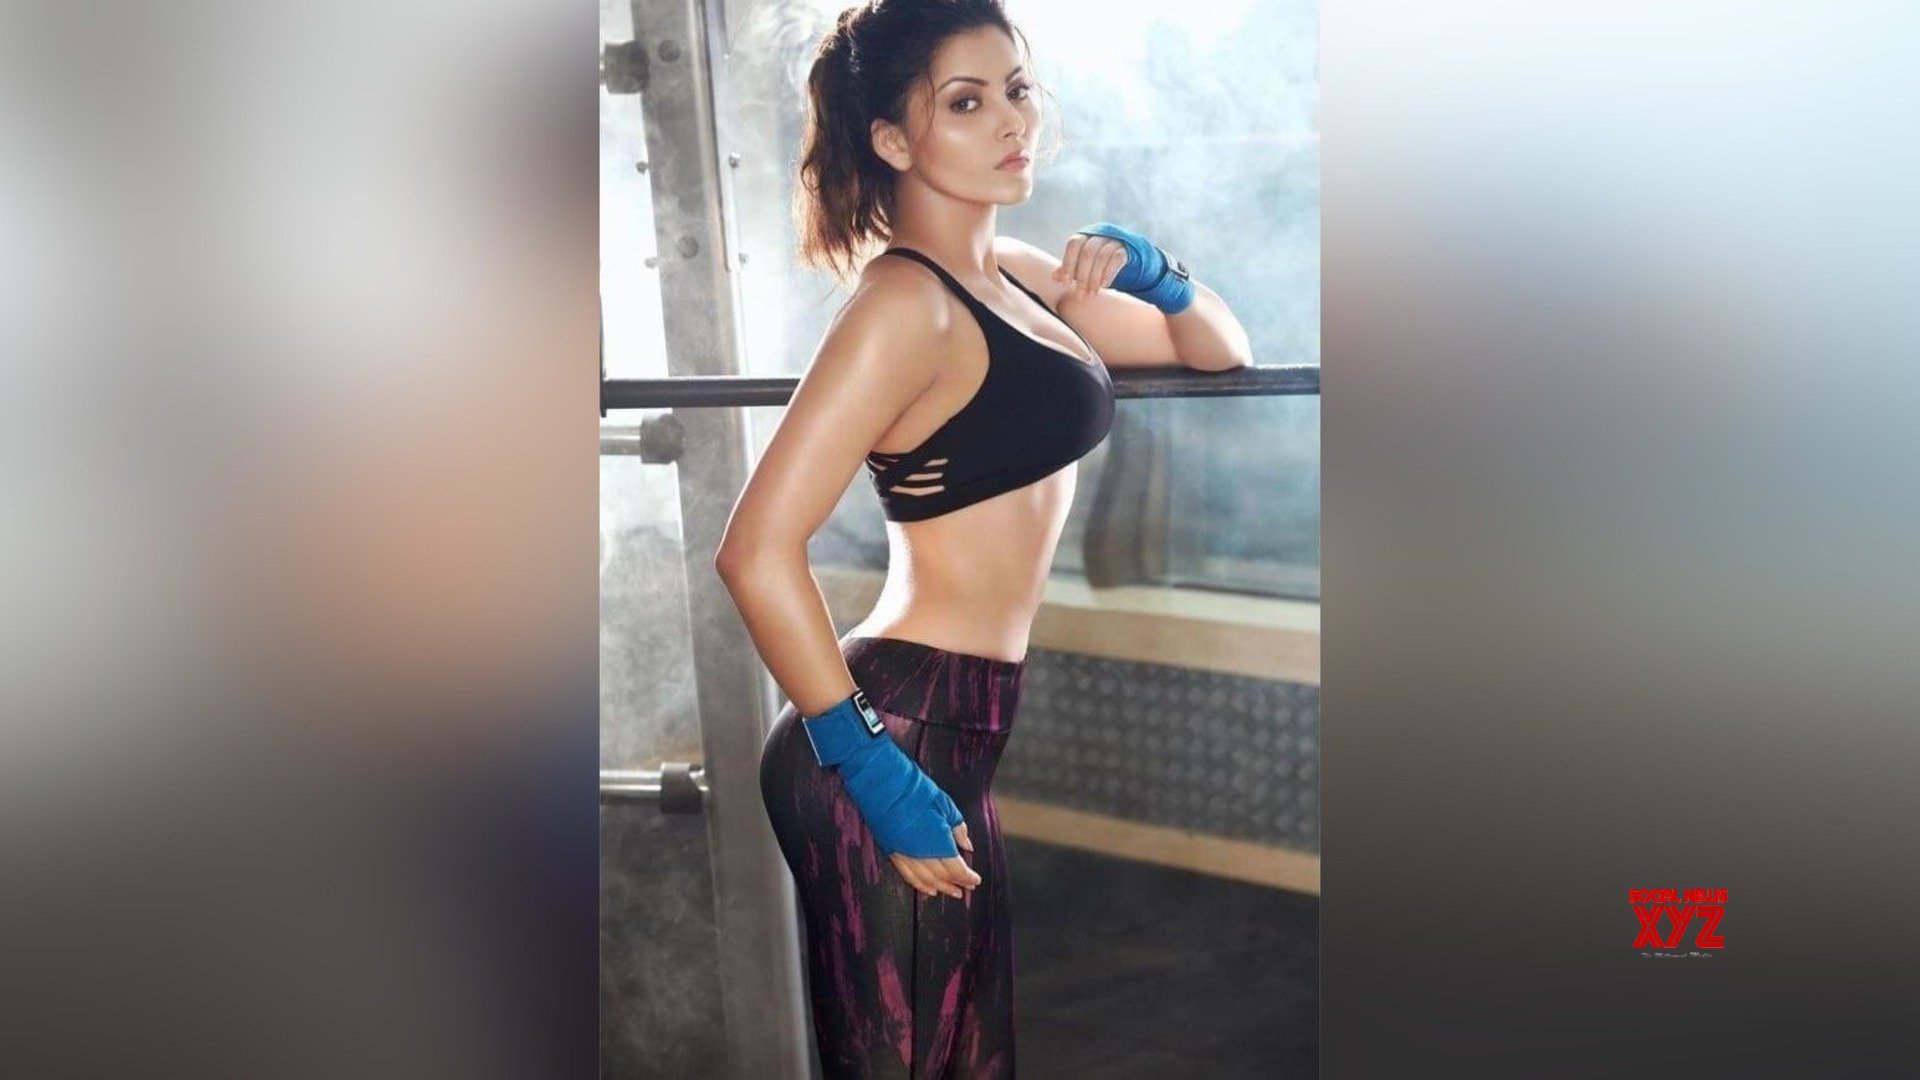 Actress-Urvashi-Rautela-s-effortless-workout-with-50kgs-Bosu-ball-and-dumbells-stuns-the-audience-.jpeg?fit=1920%2C1080&quality=80&zoom=1&ssl=1%3Fv%3D1630093603&is-pending-load=1